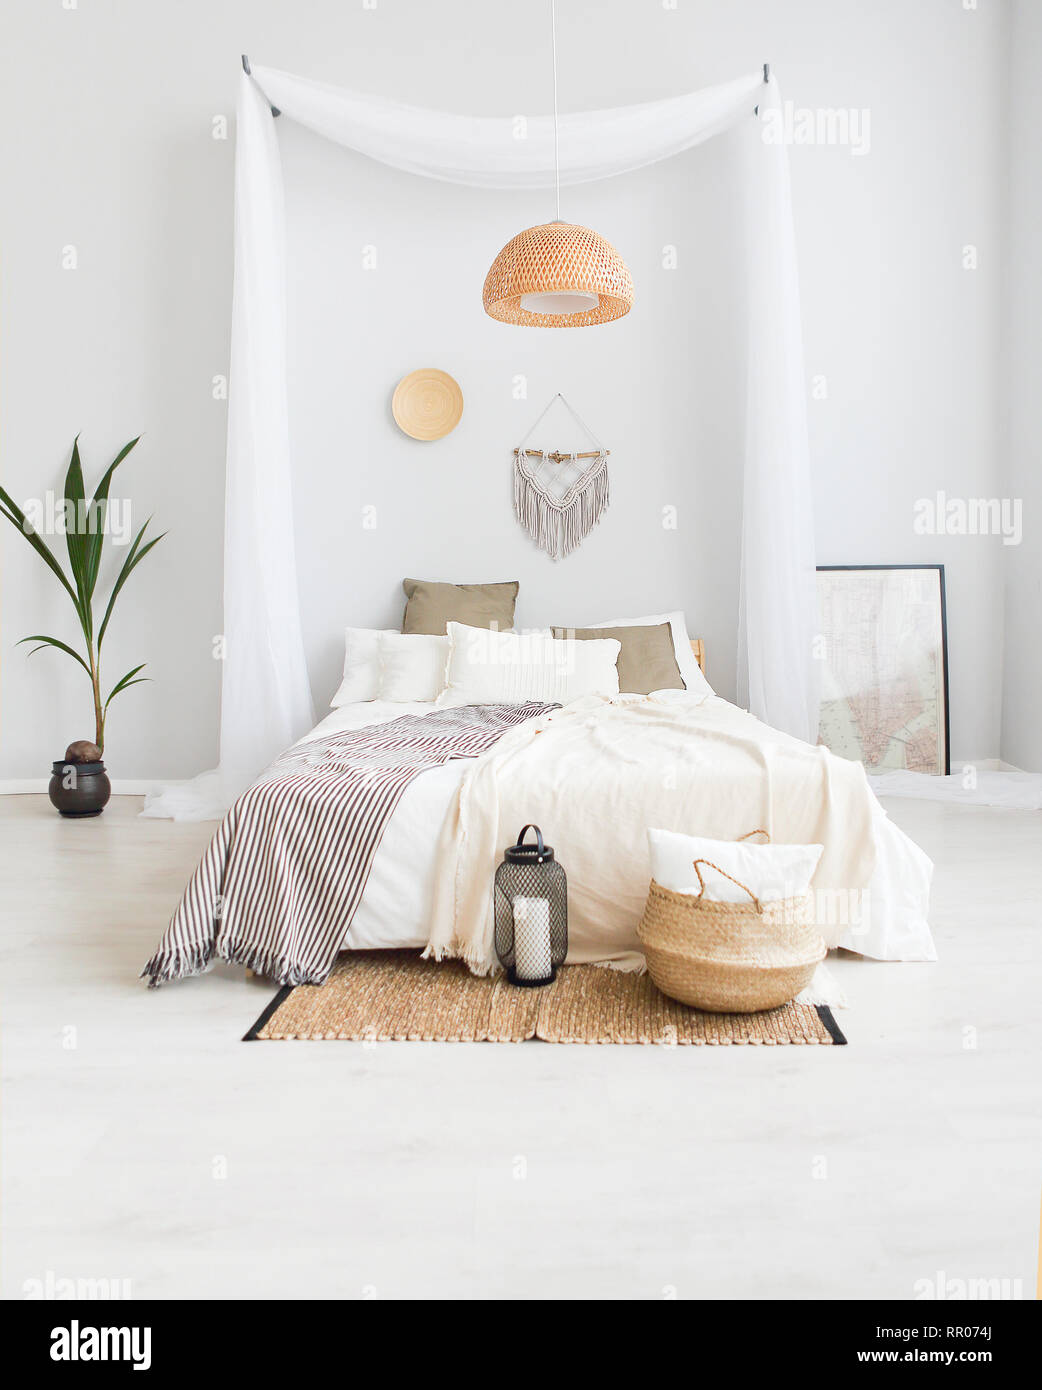 White and beige bedroom in boho style with macrame on the ...